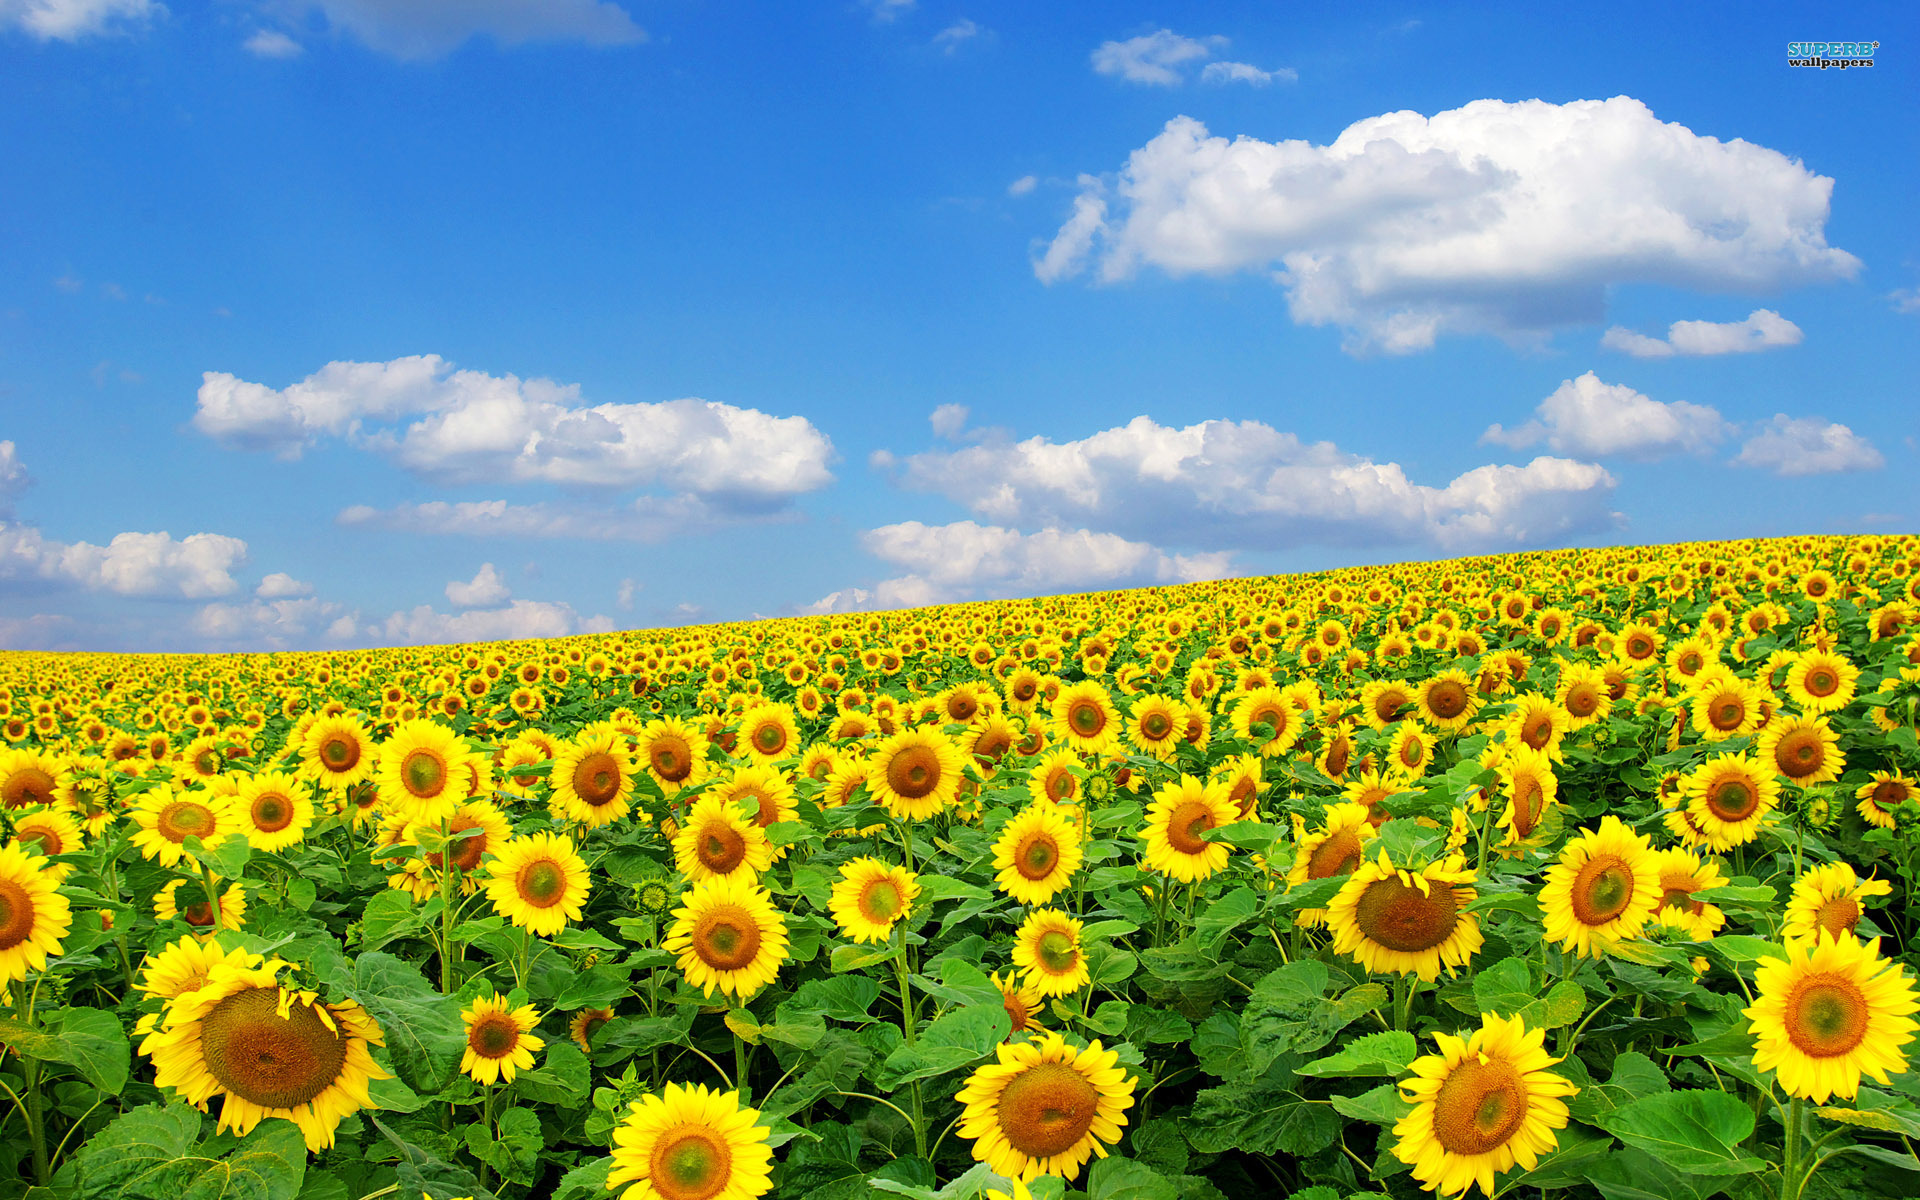 Sunflower Field wallpaper 1920x1200 78430 1920x1200